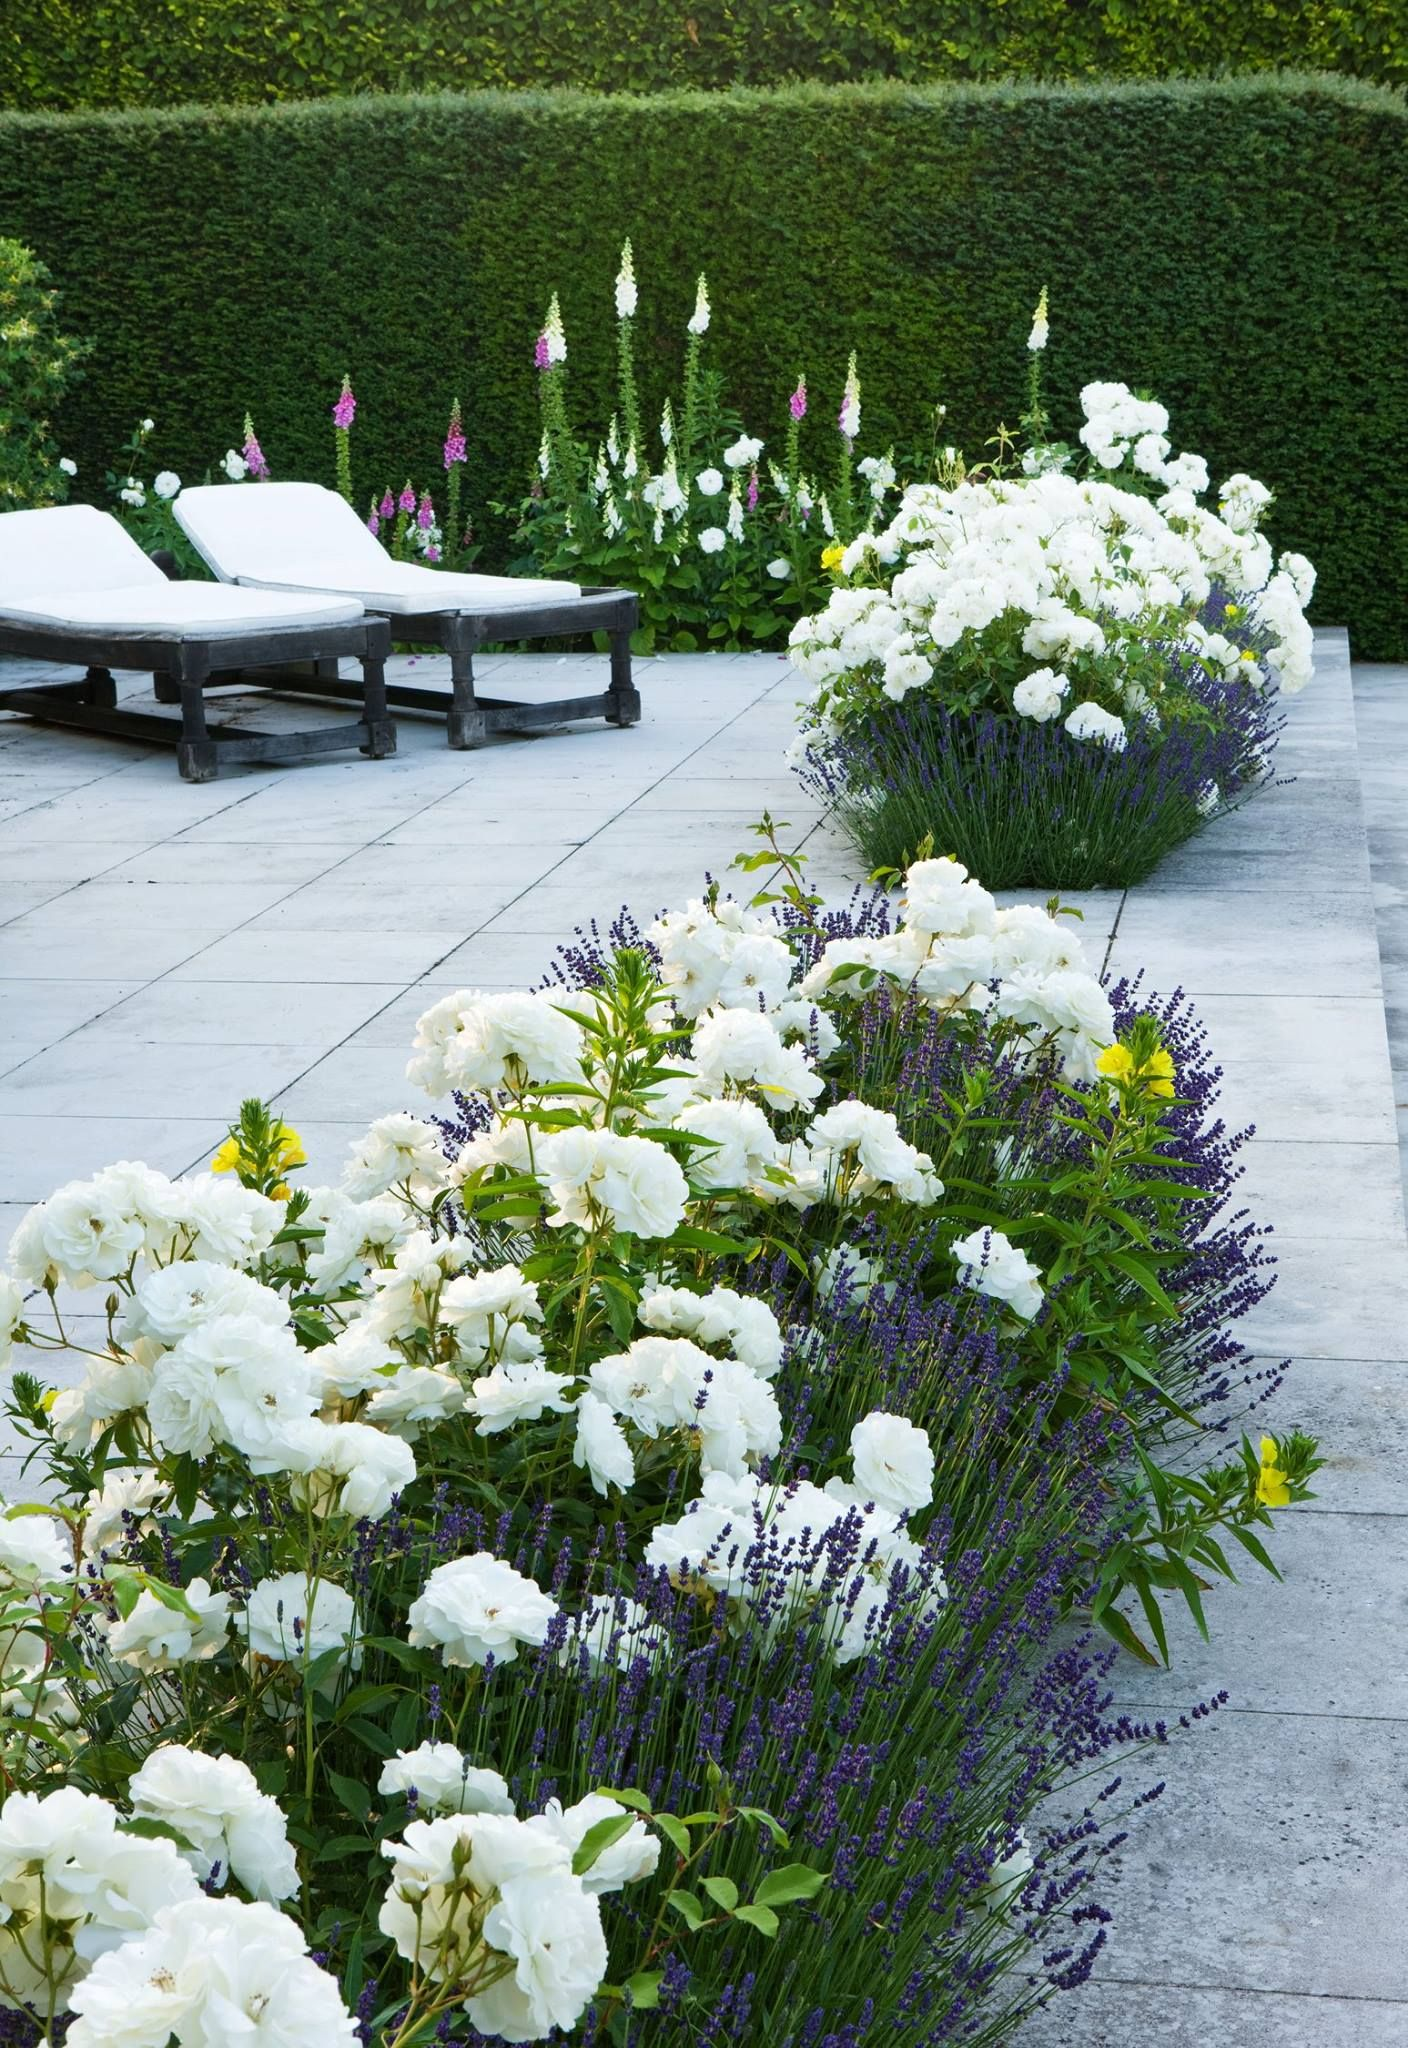 Classic contemporary - beautiful white flowers, green walls, loungers